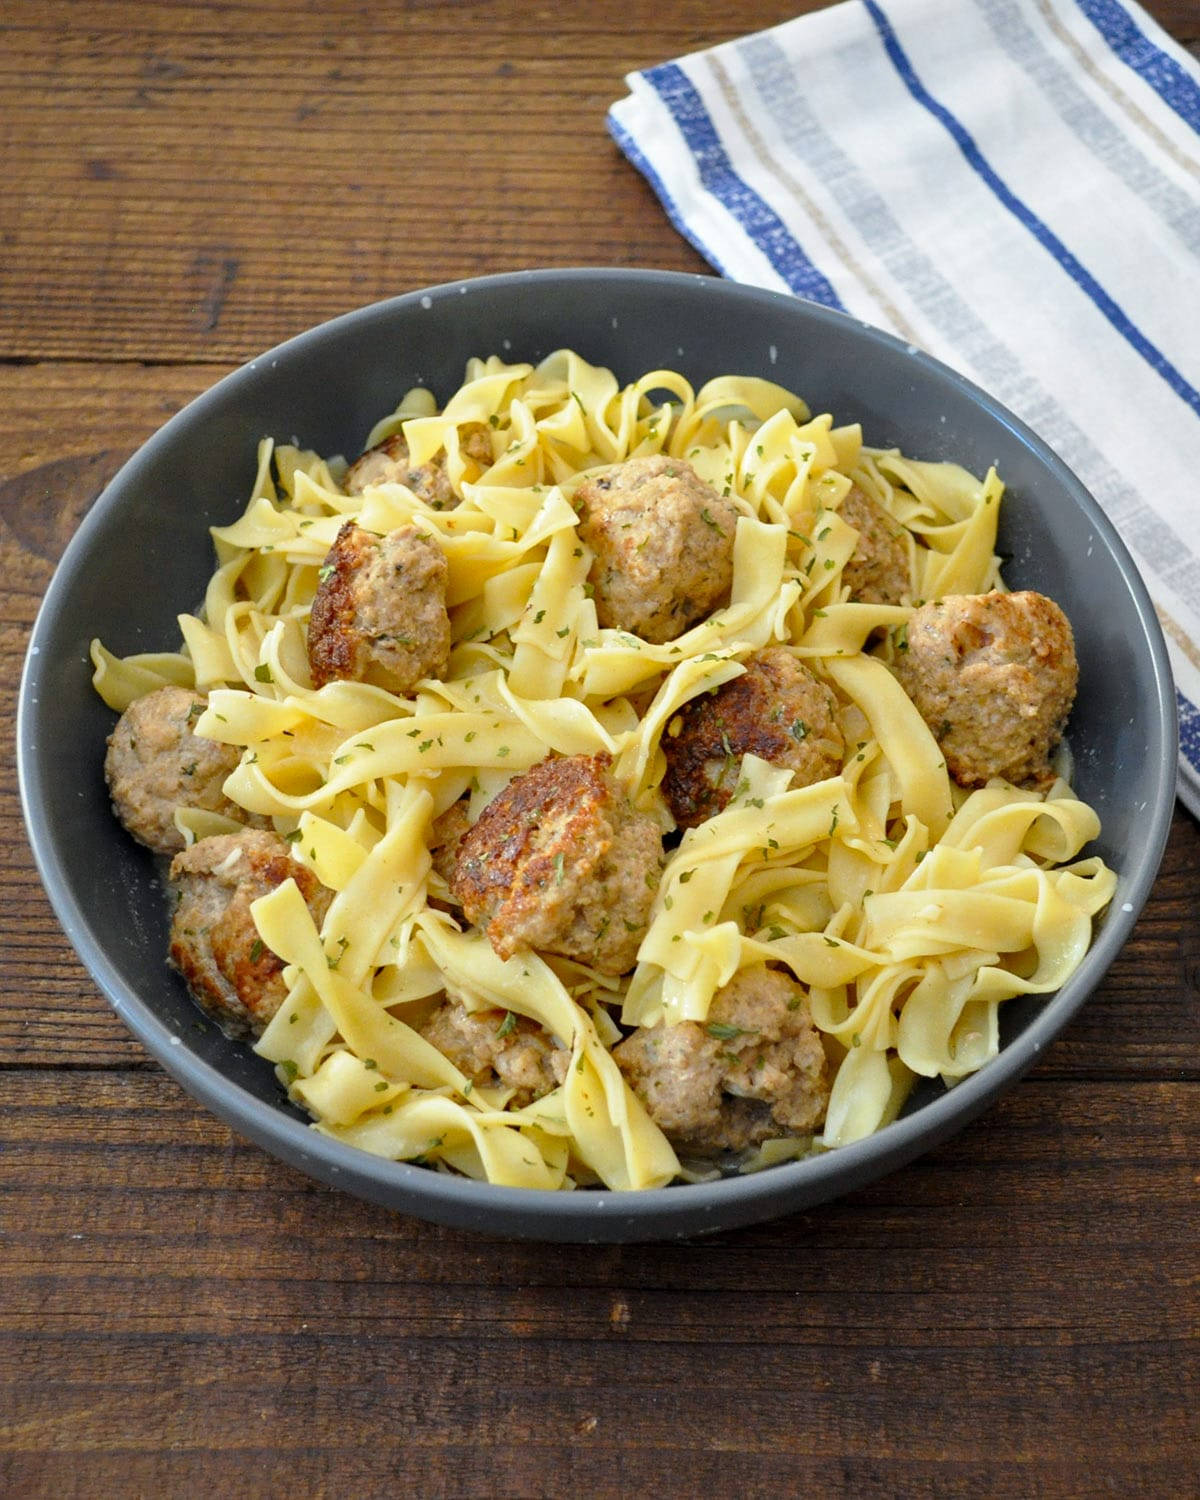 ground turkey swedish meatballs and noodles in a gray bowl